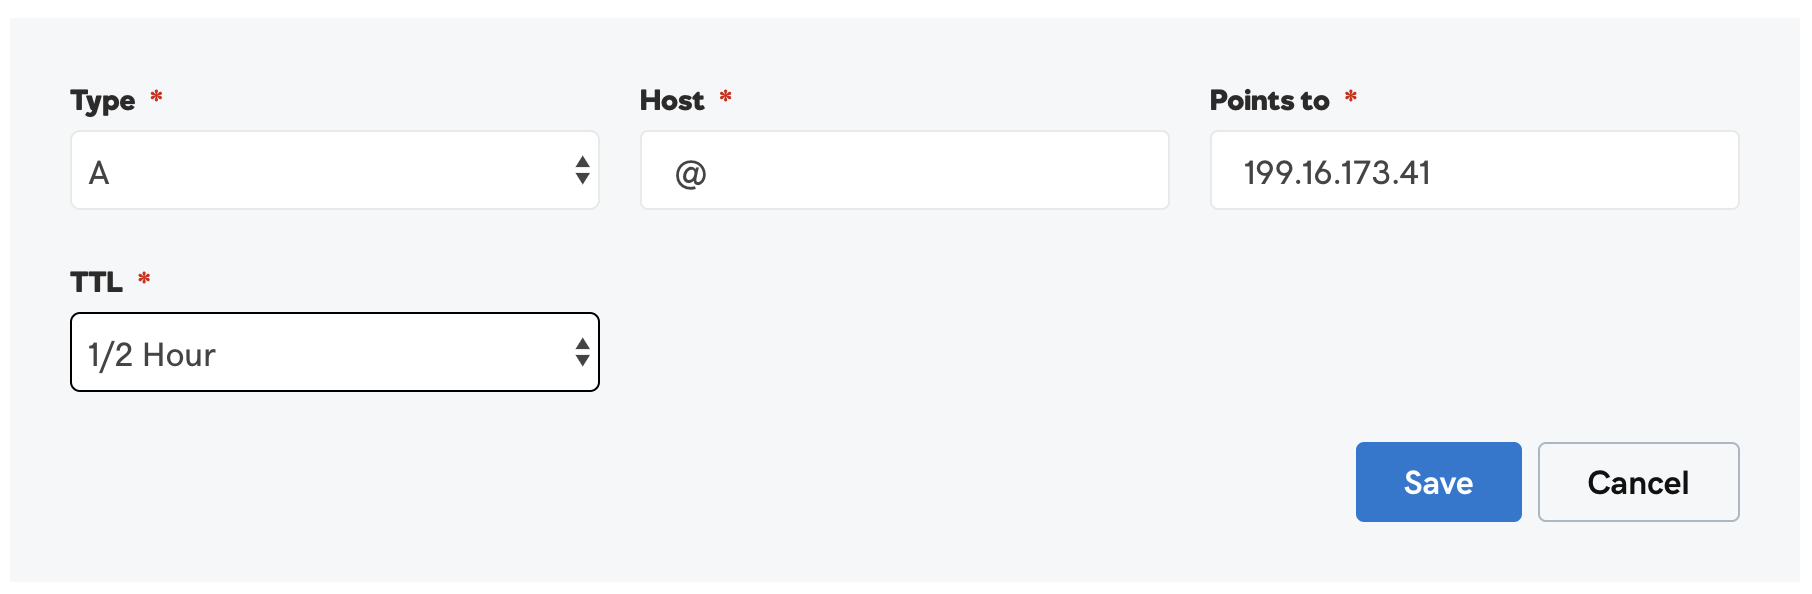 A record settings for Pressable sites.